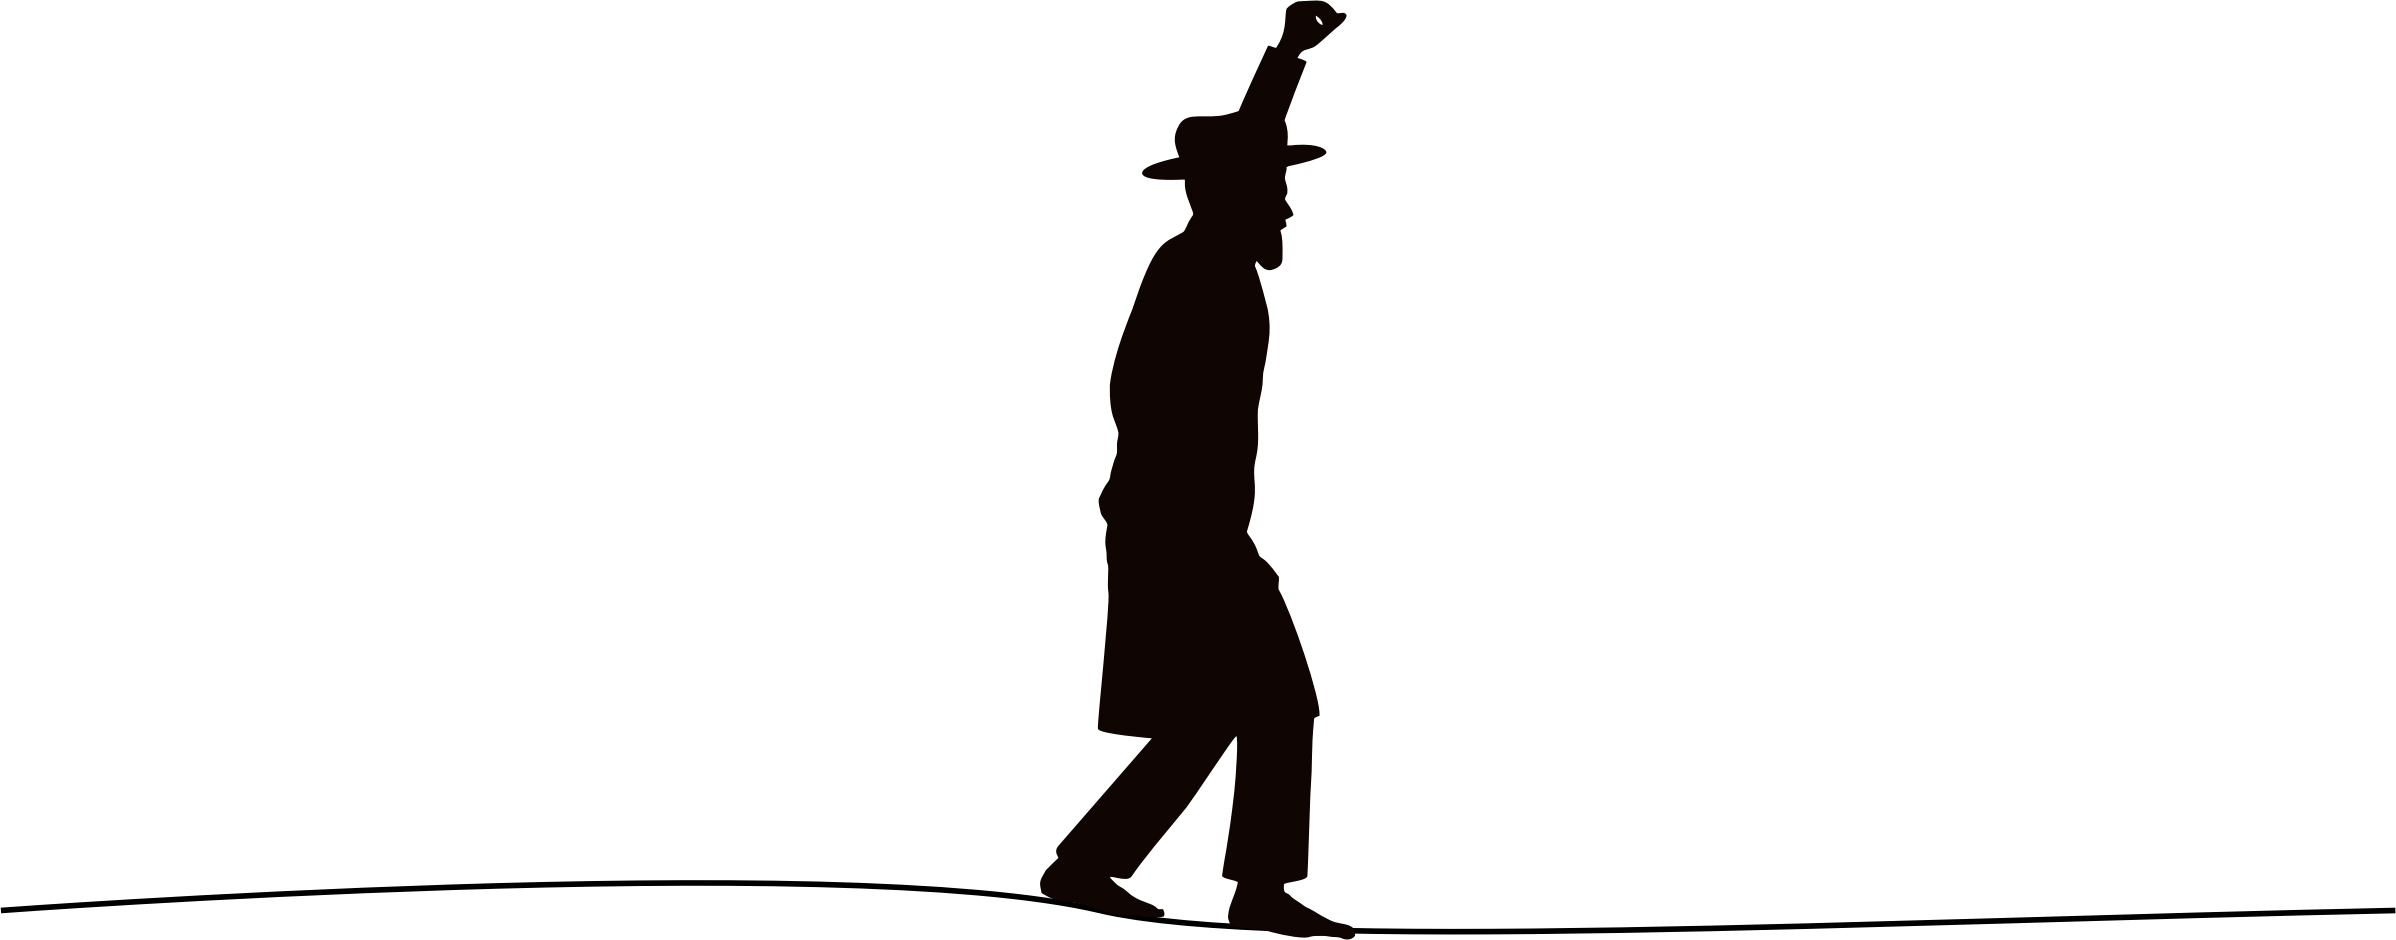 Tightrope walker silhouette adapted. Clipart hat coat